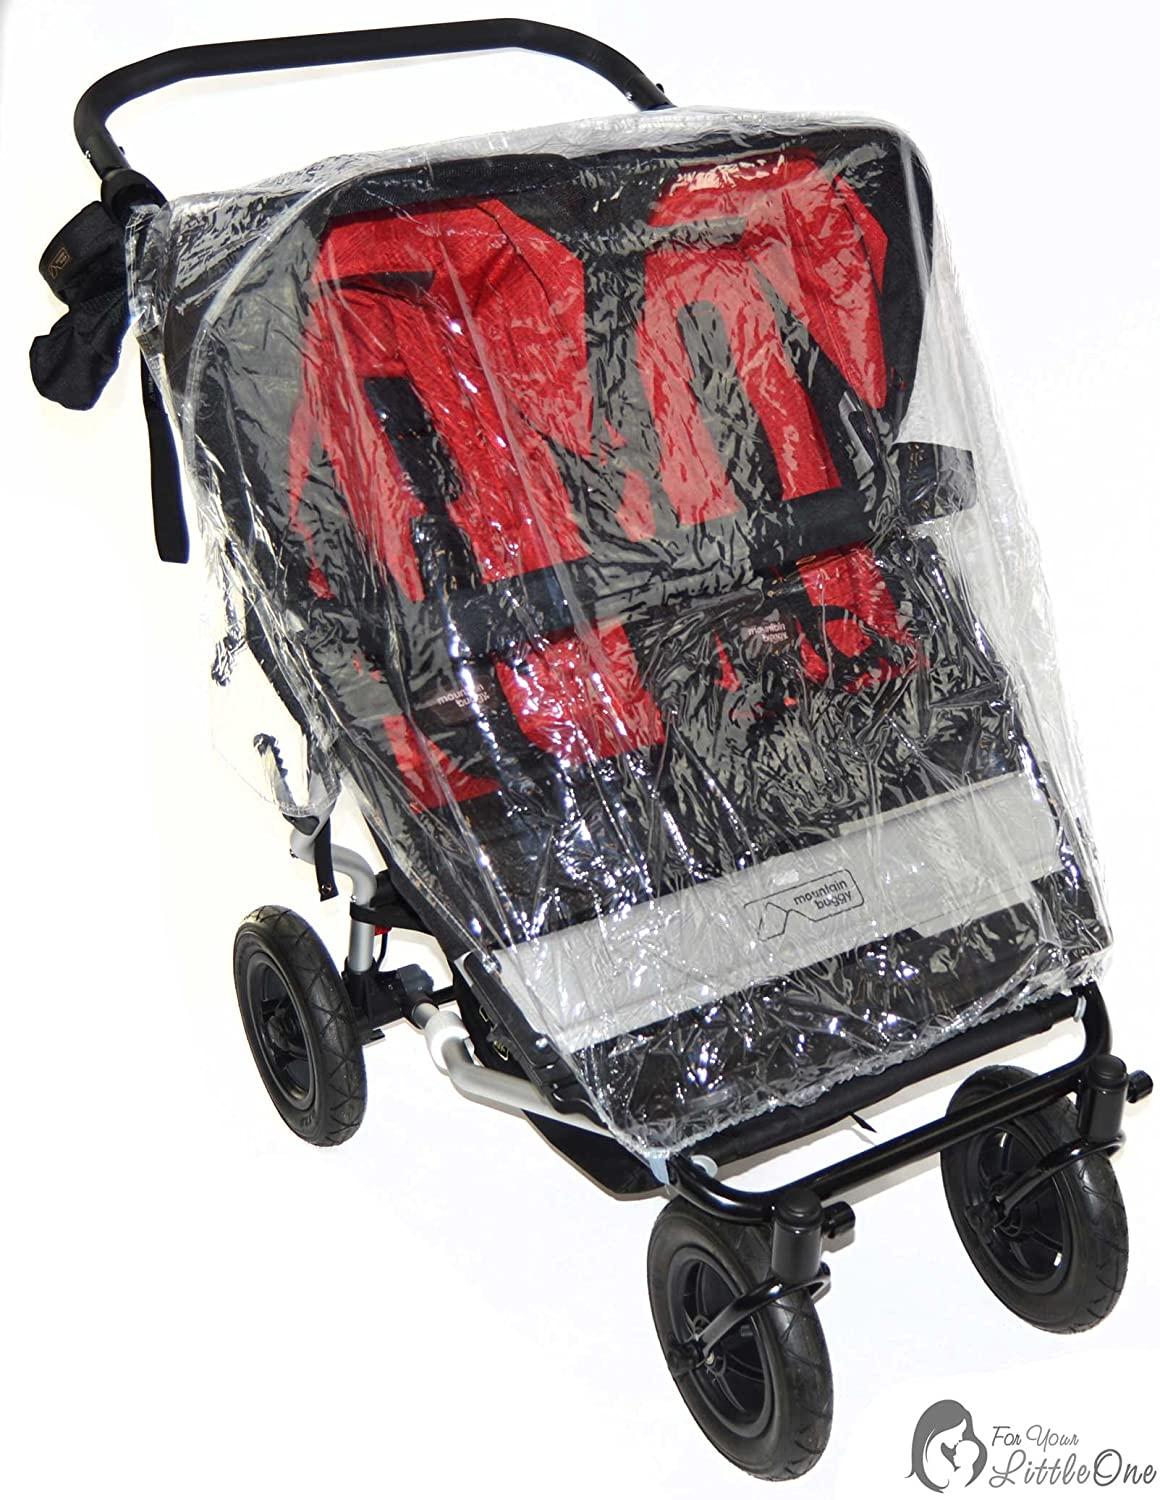 Protector de lluvia Compatible con Mountain Buggy Duet - Carrito doble (213): Amazon.es: Bebé